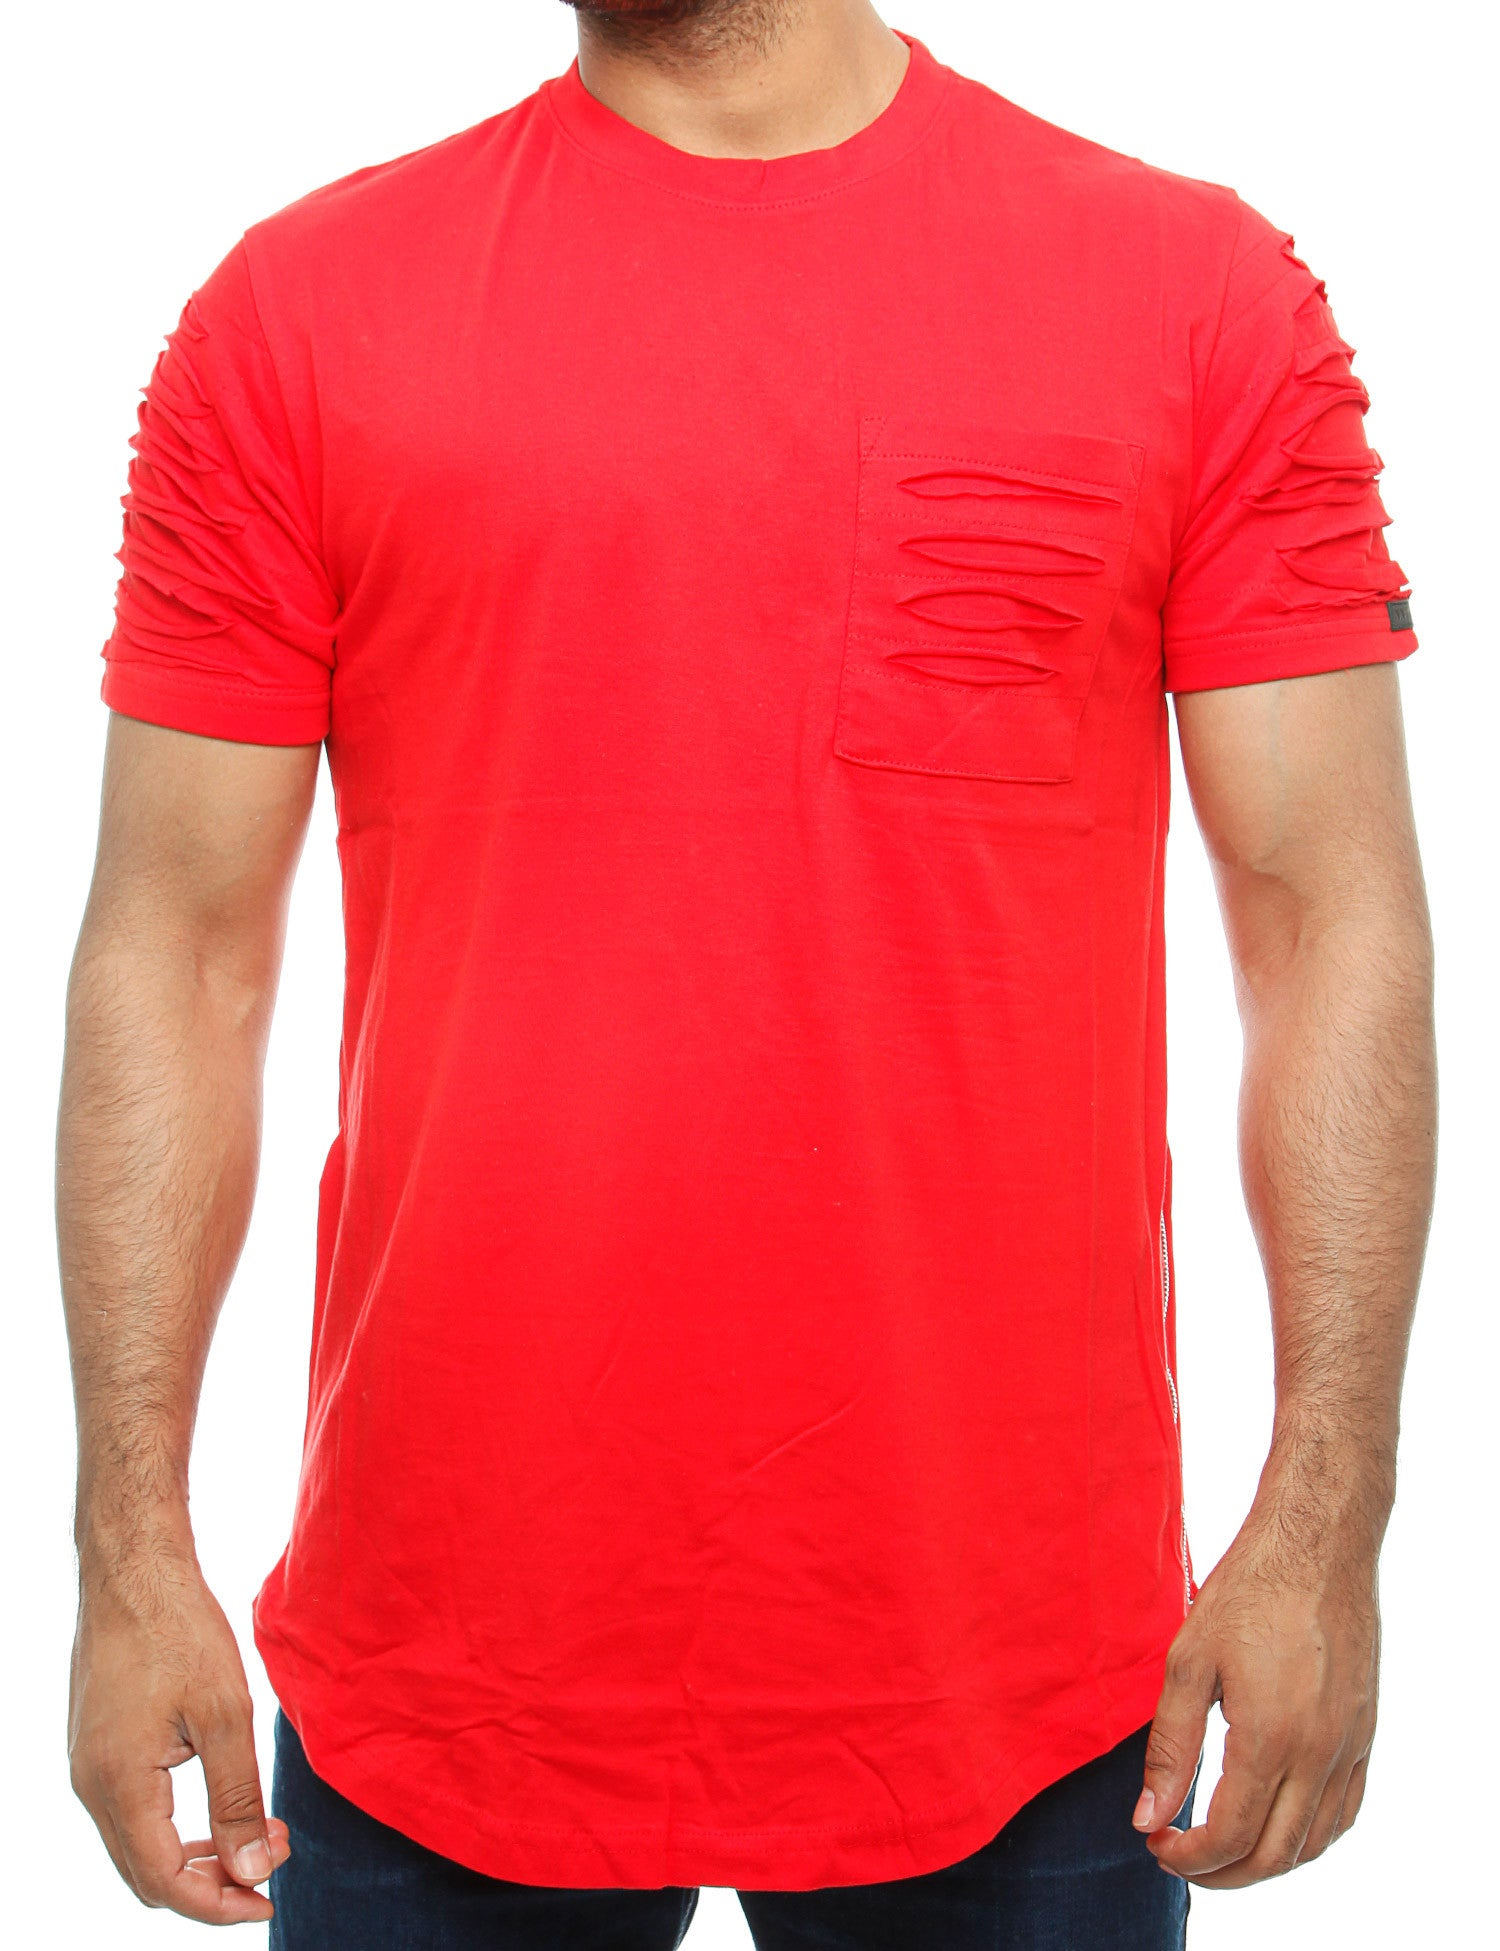 Southpole T-Shirt 16191-1011 Red